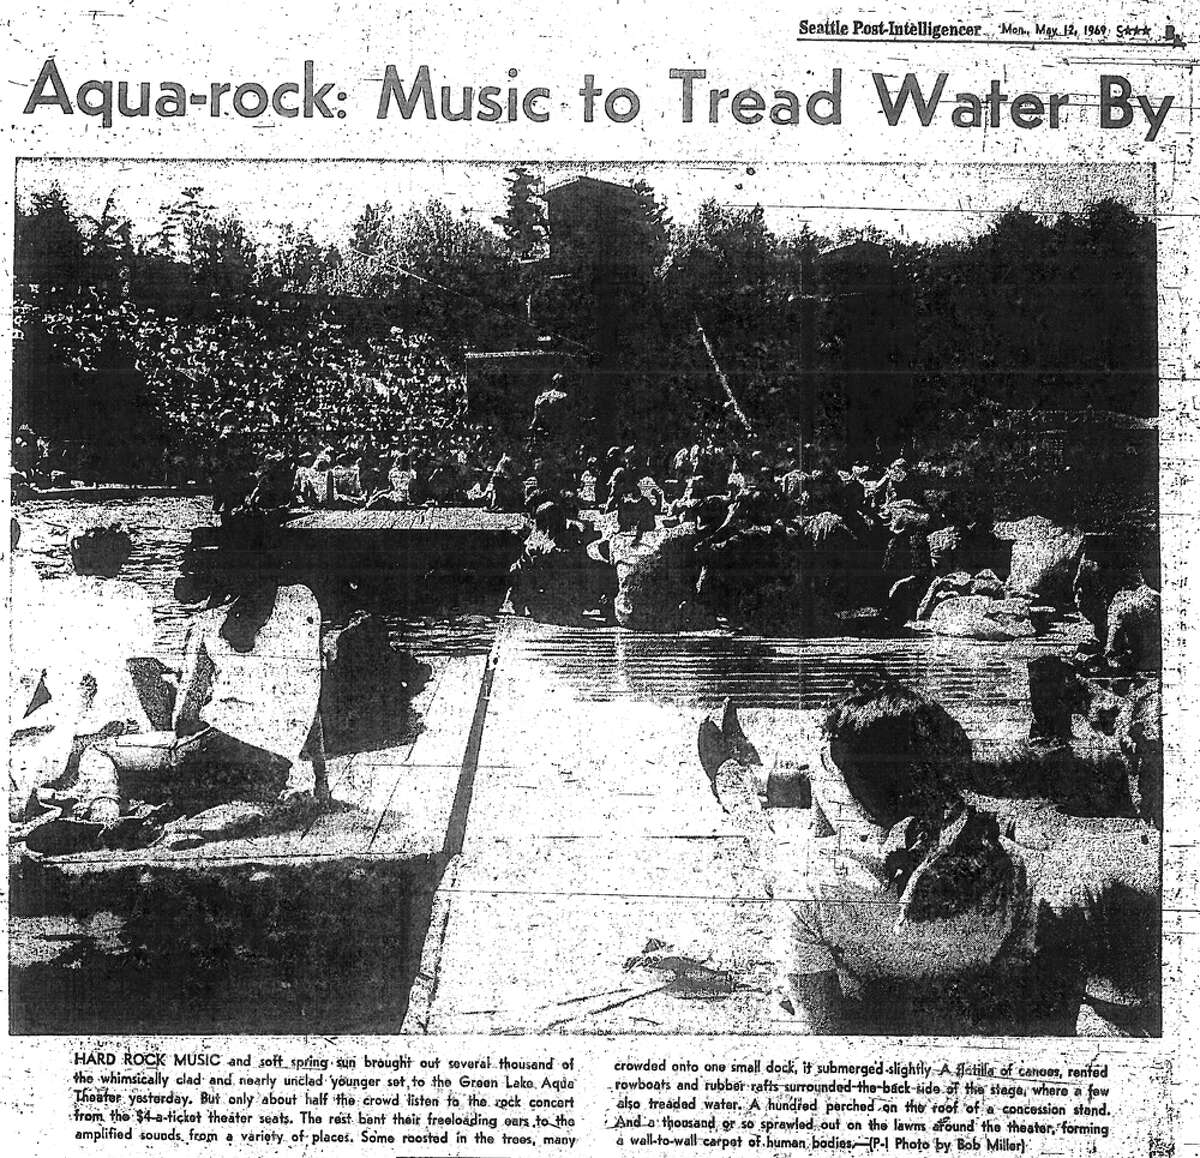 Get this: Led Zeppelin once played at Green Lake and the tickets were $4. Dozens of others listened from nearby areas or got rowboats and checked out the show from the water. The show was at the Aqua Theatre, which was built in 1950 as part of the first Seafair. The theatre was is disrepair when Led Zeppelin played there and it was dismantled in the 1970s. Today, one section of the former theatre remains. Led Zeppelin also played at Woodinville's Gold Creek Park on July 27, 1969. Read more about the Green Lake show here from Historylink.org's Peter Blecha.